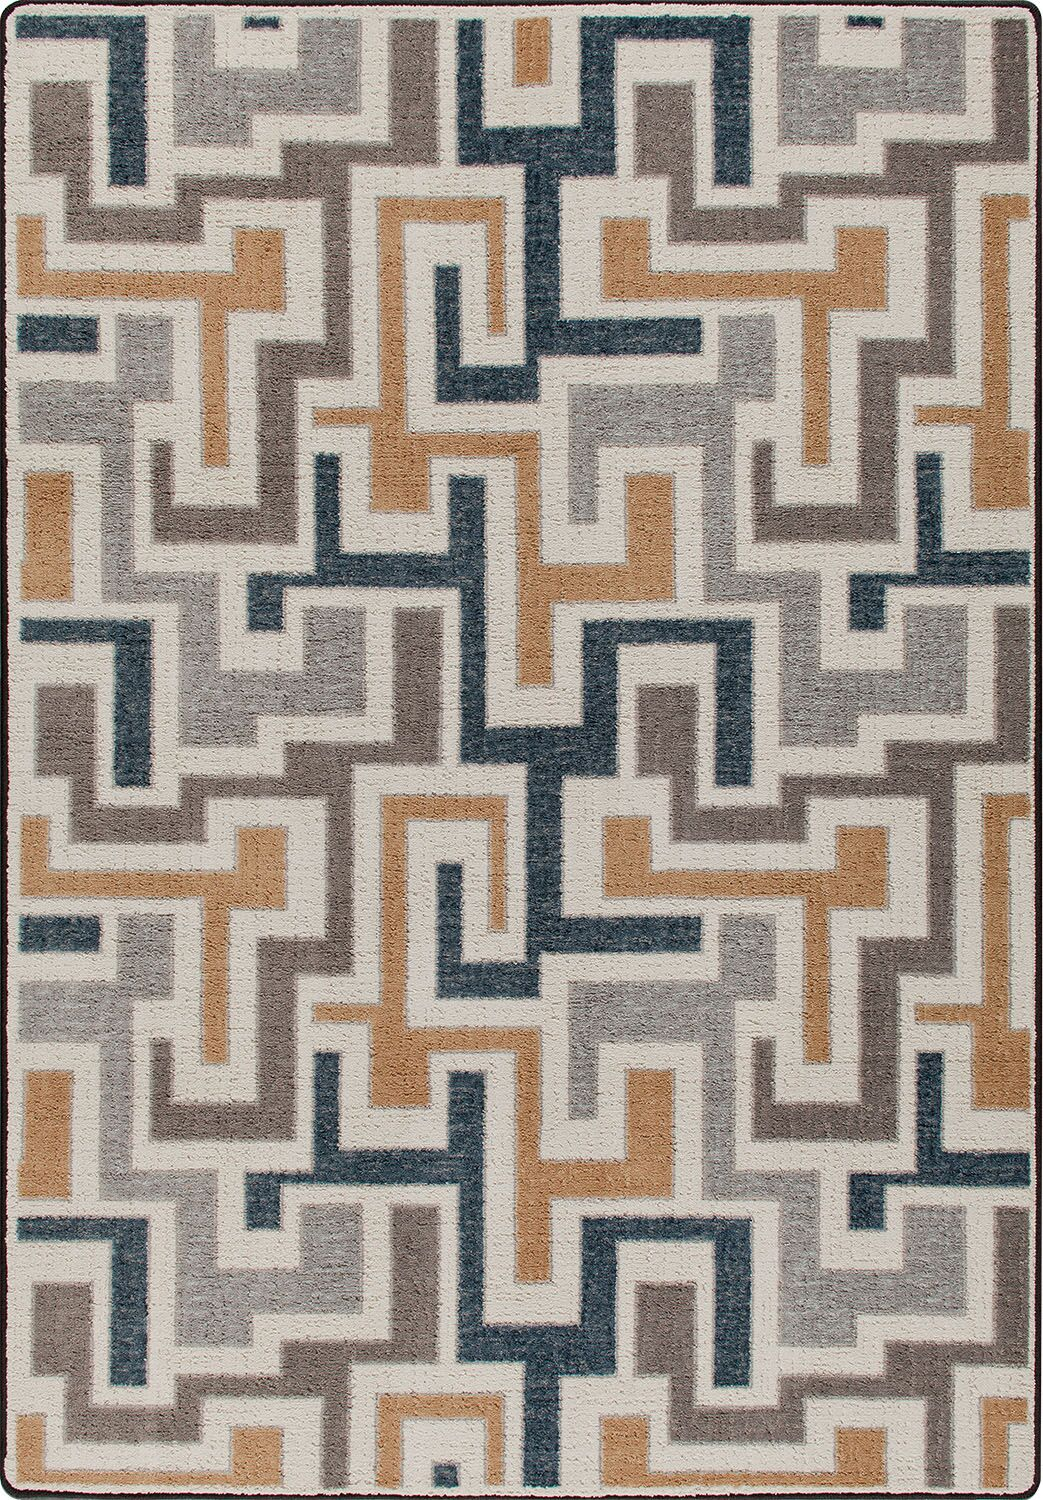 Mix and Mingle Stone Junctions Rug Rug Size: Runner 2'1